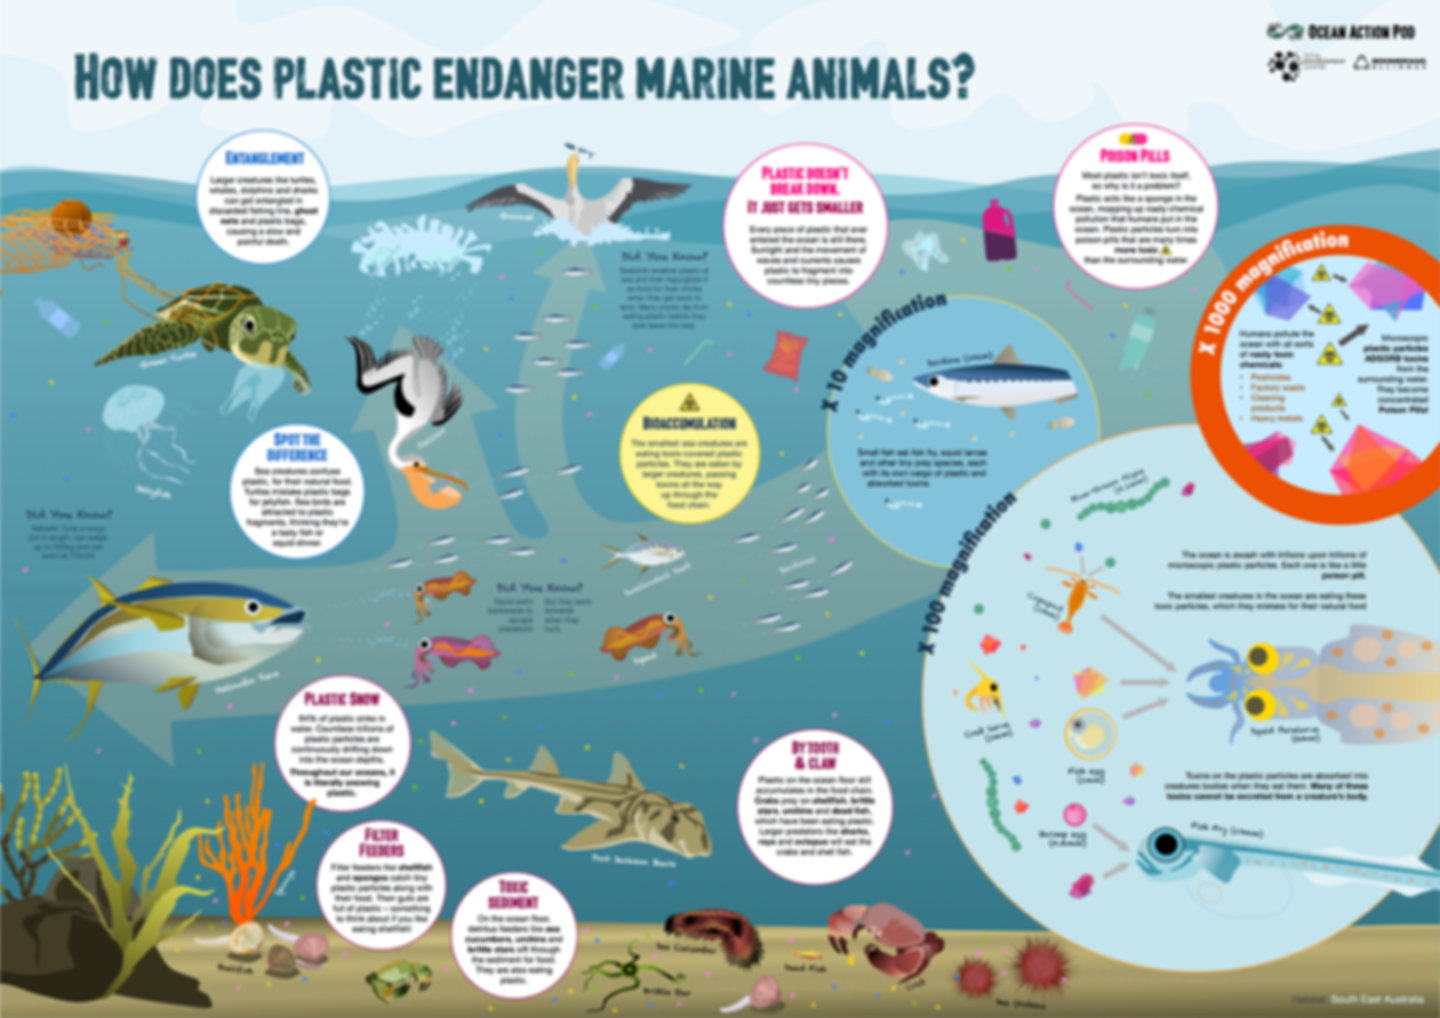 How does plastic endanger marine animals